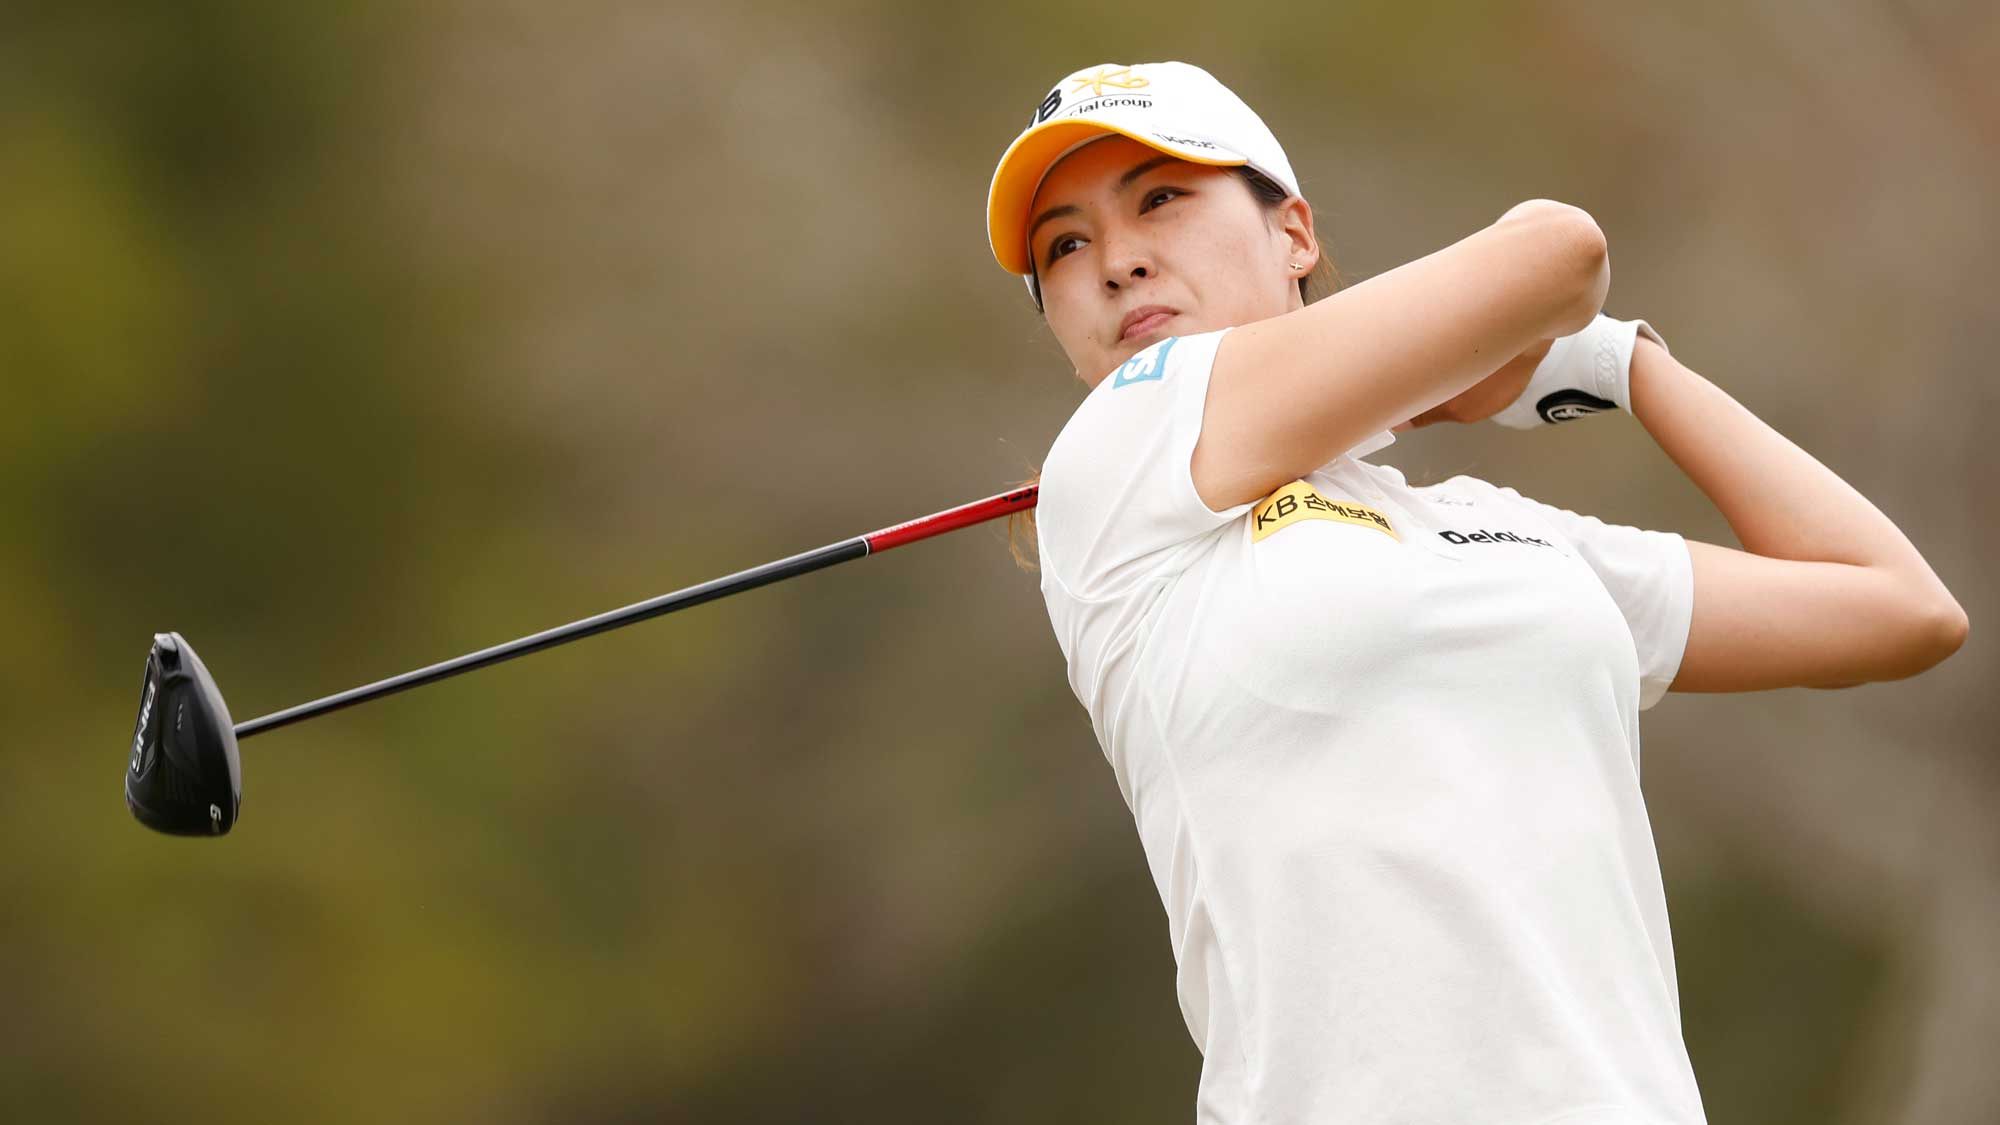 In-gee Chun of Korea plays her shot from the third tee during the first round of the CME Group Tour Championship